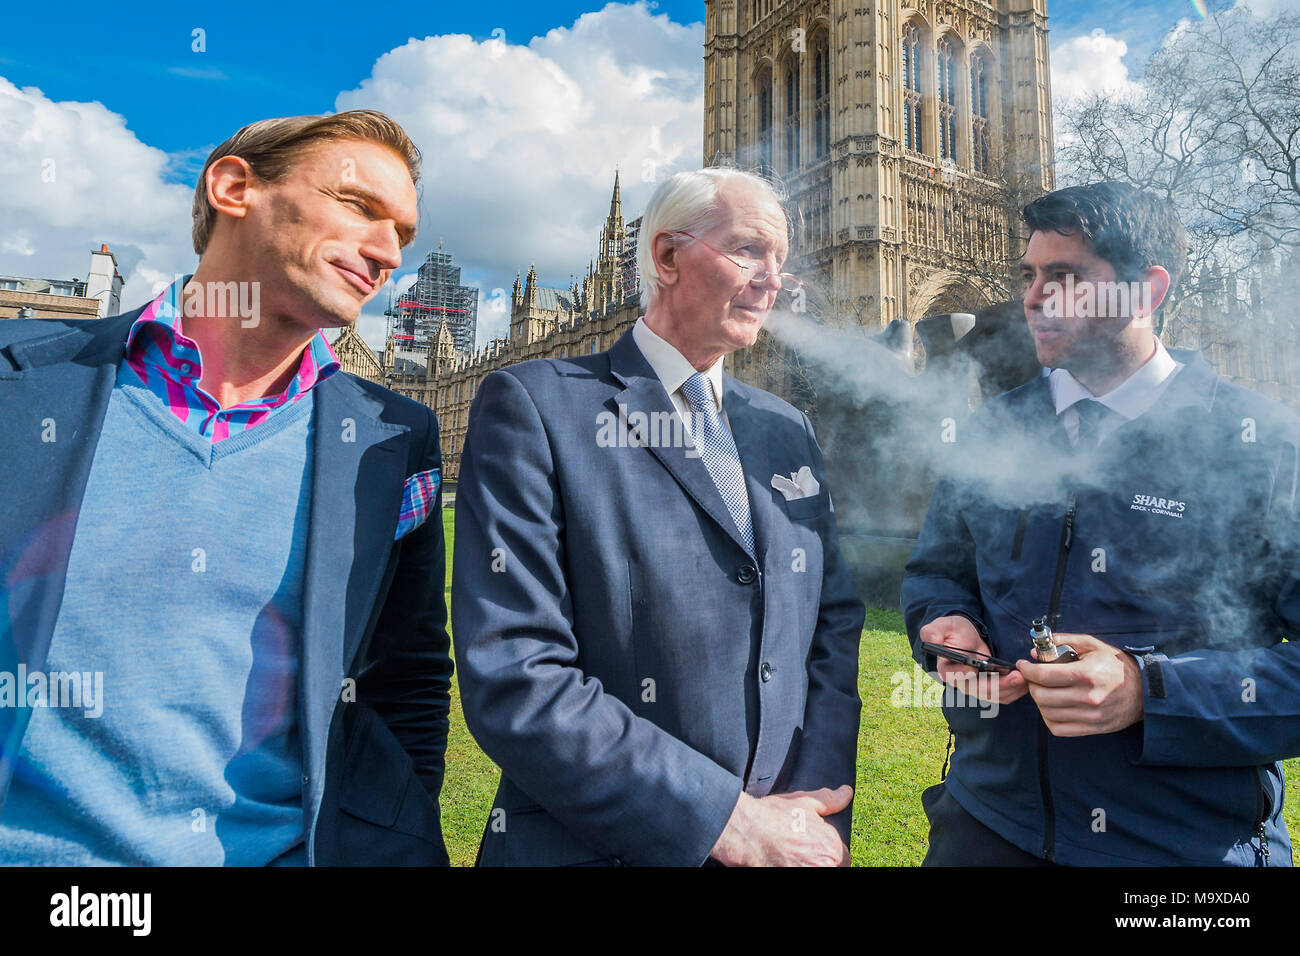 London, UK  29th Mar, 2018  Dr Christian Jessen, Lord